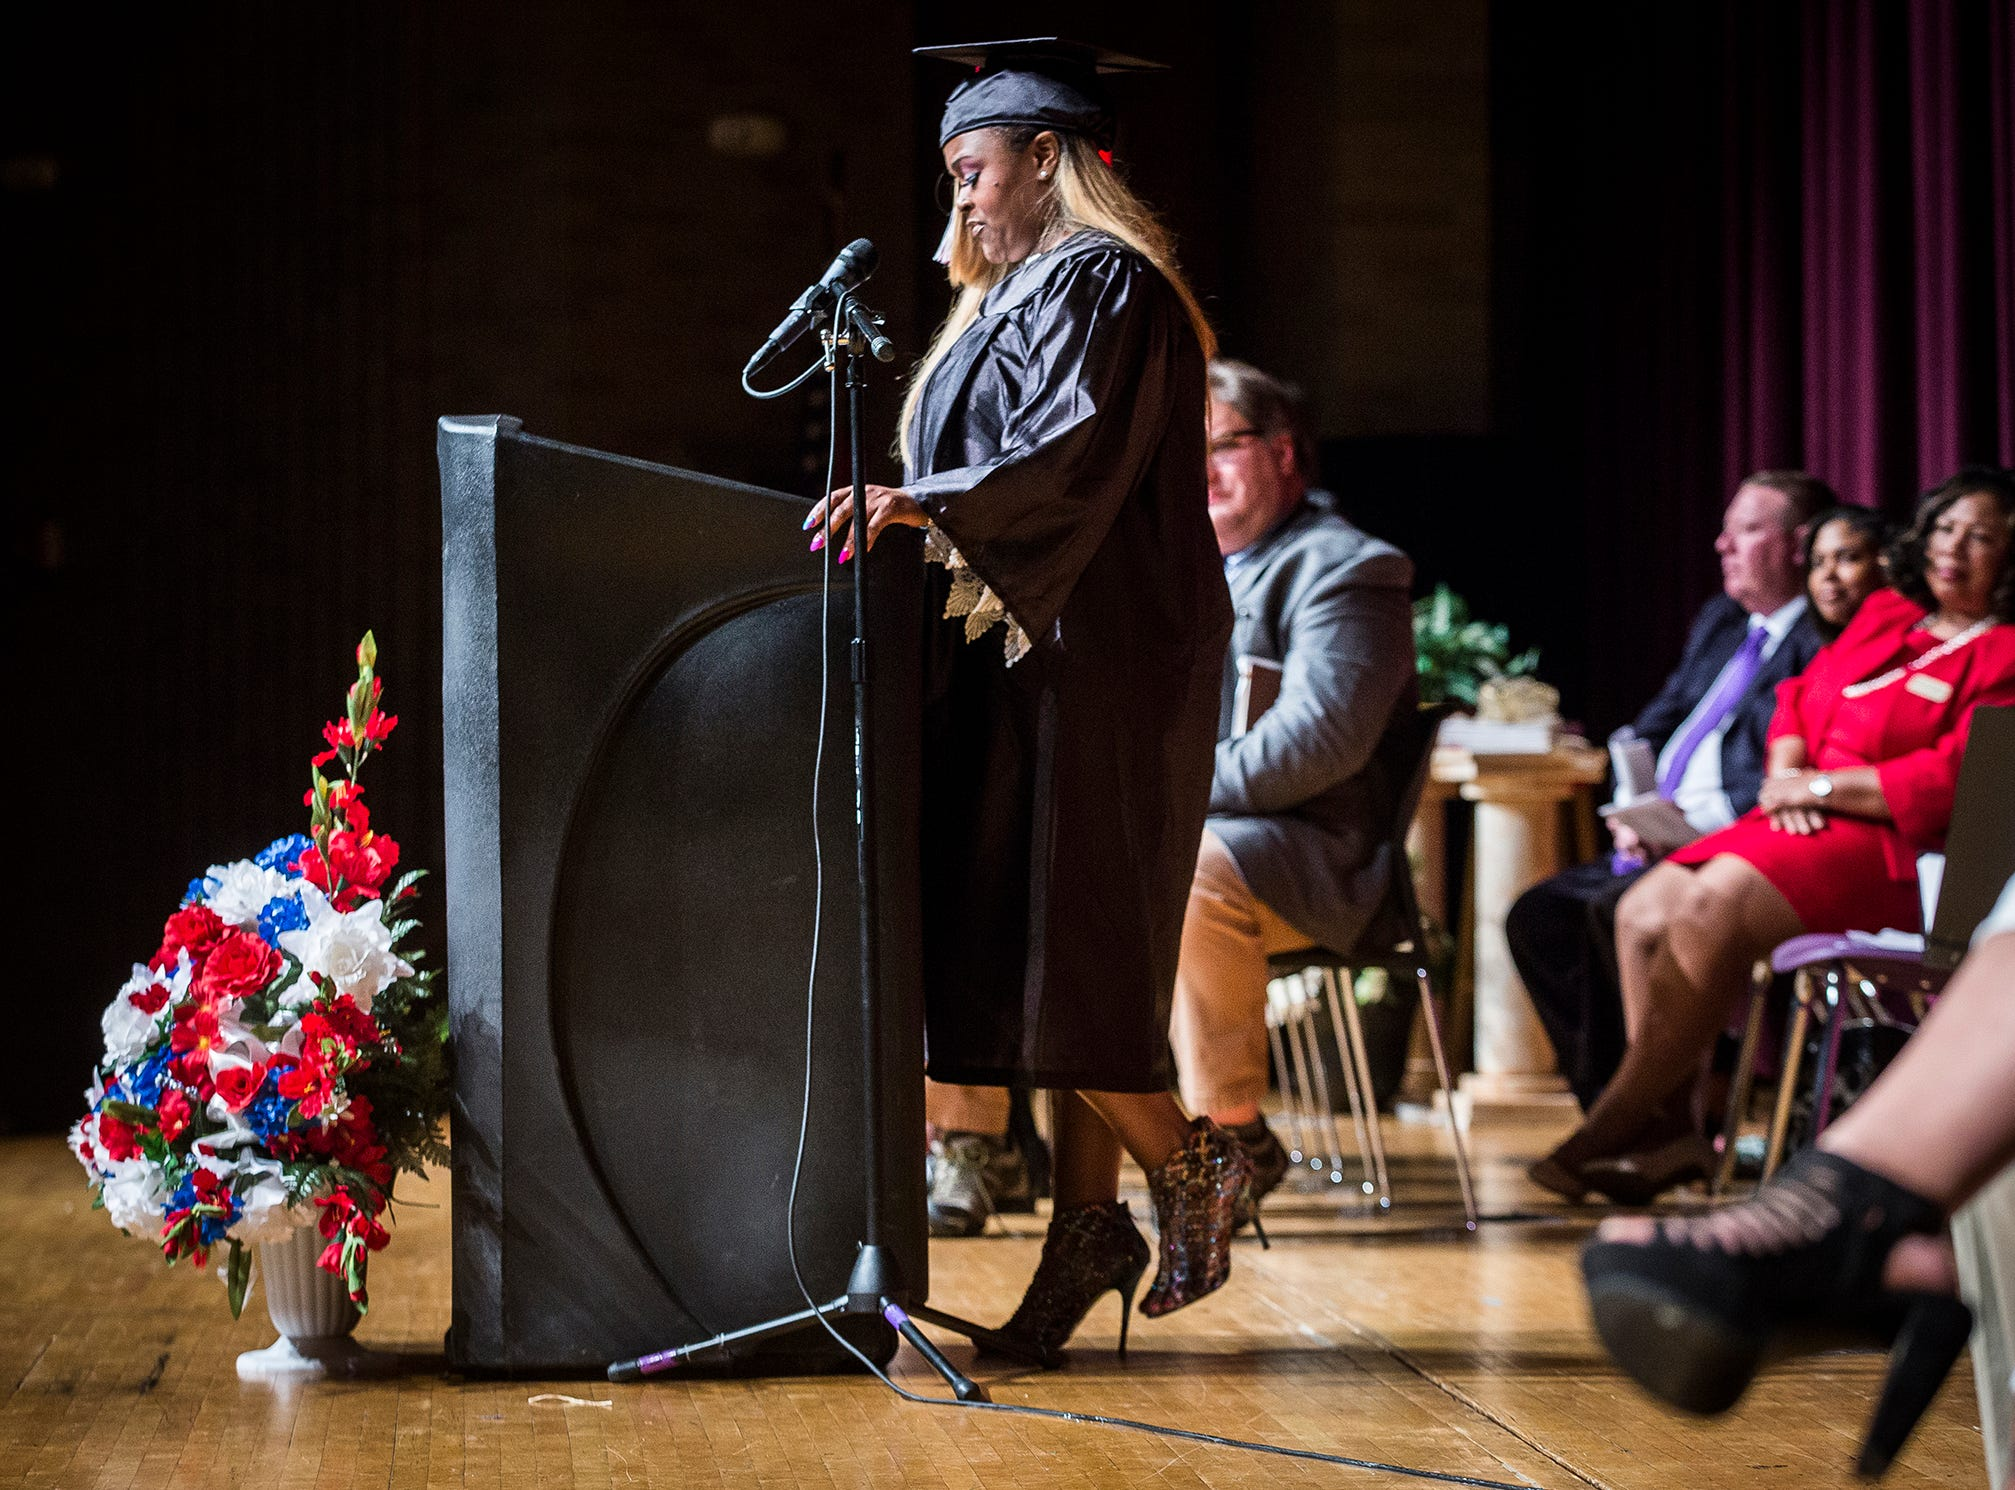 Angela Bennett speaks to attendees about overcoming addiction and other hurdles before receiving her high school diploma during the 2019 MCS Adult Education Program graduation ceremony at Central Thursday night.